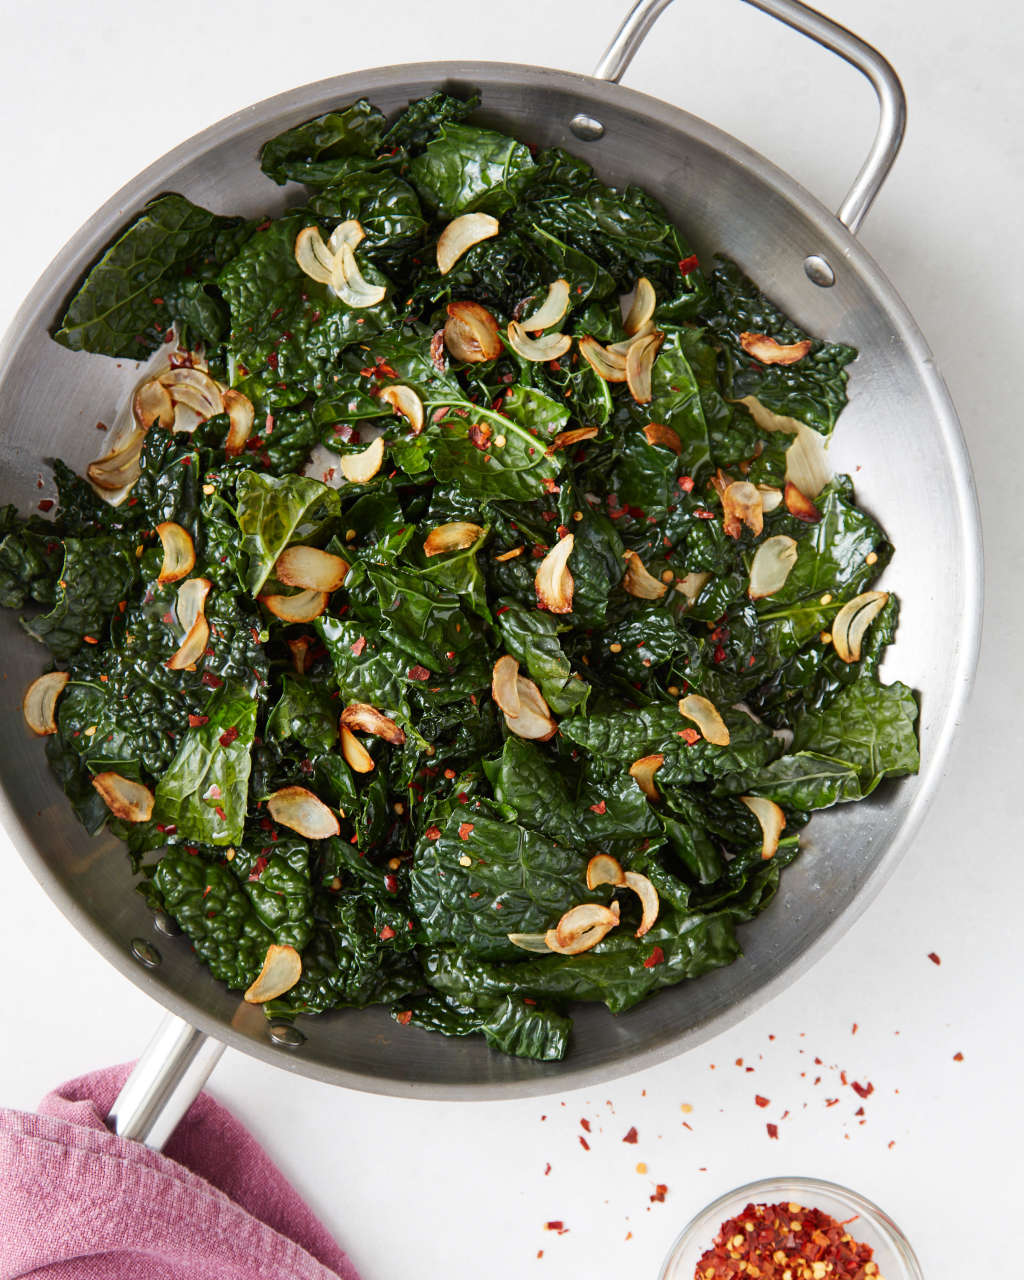 This Is the Best Way to Cook Kale (It Only Takes 5 Minutes)